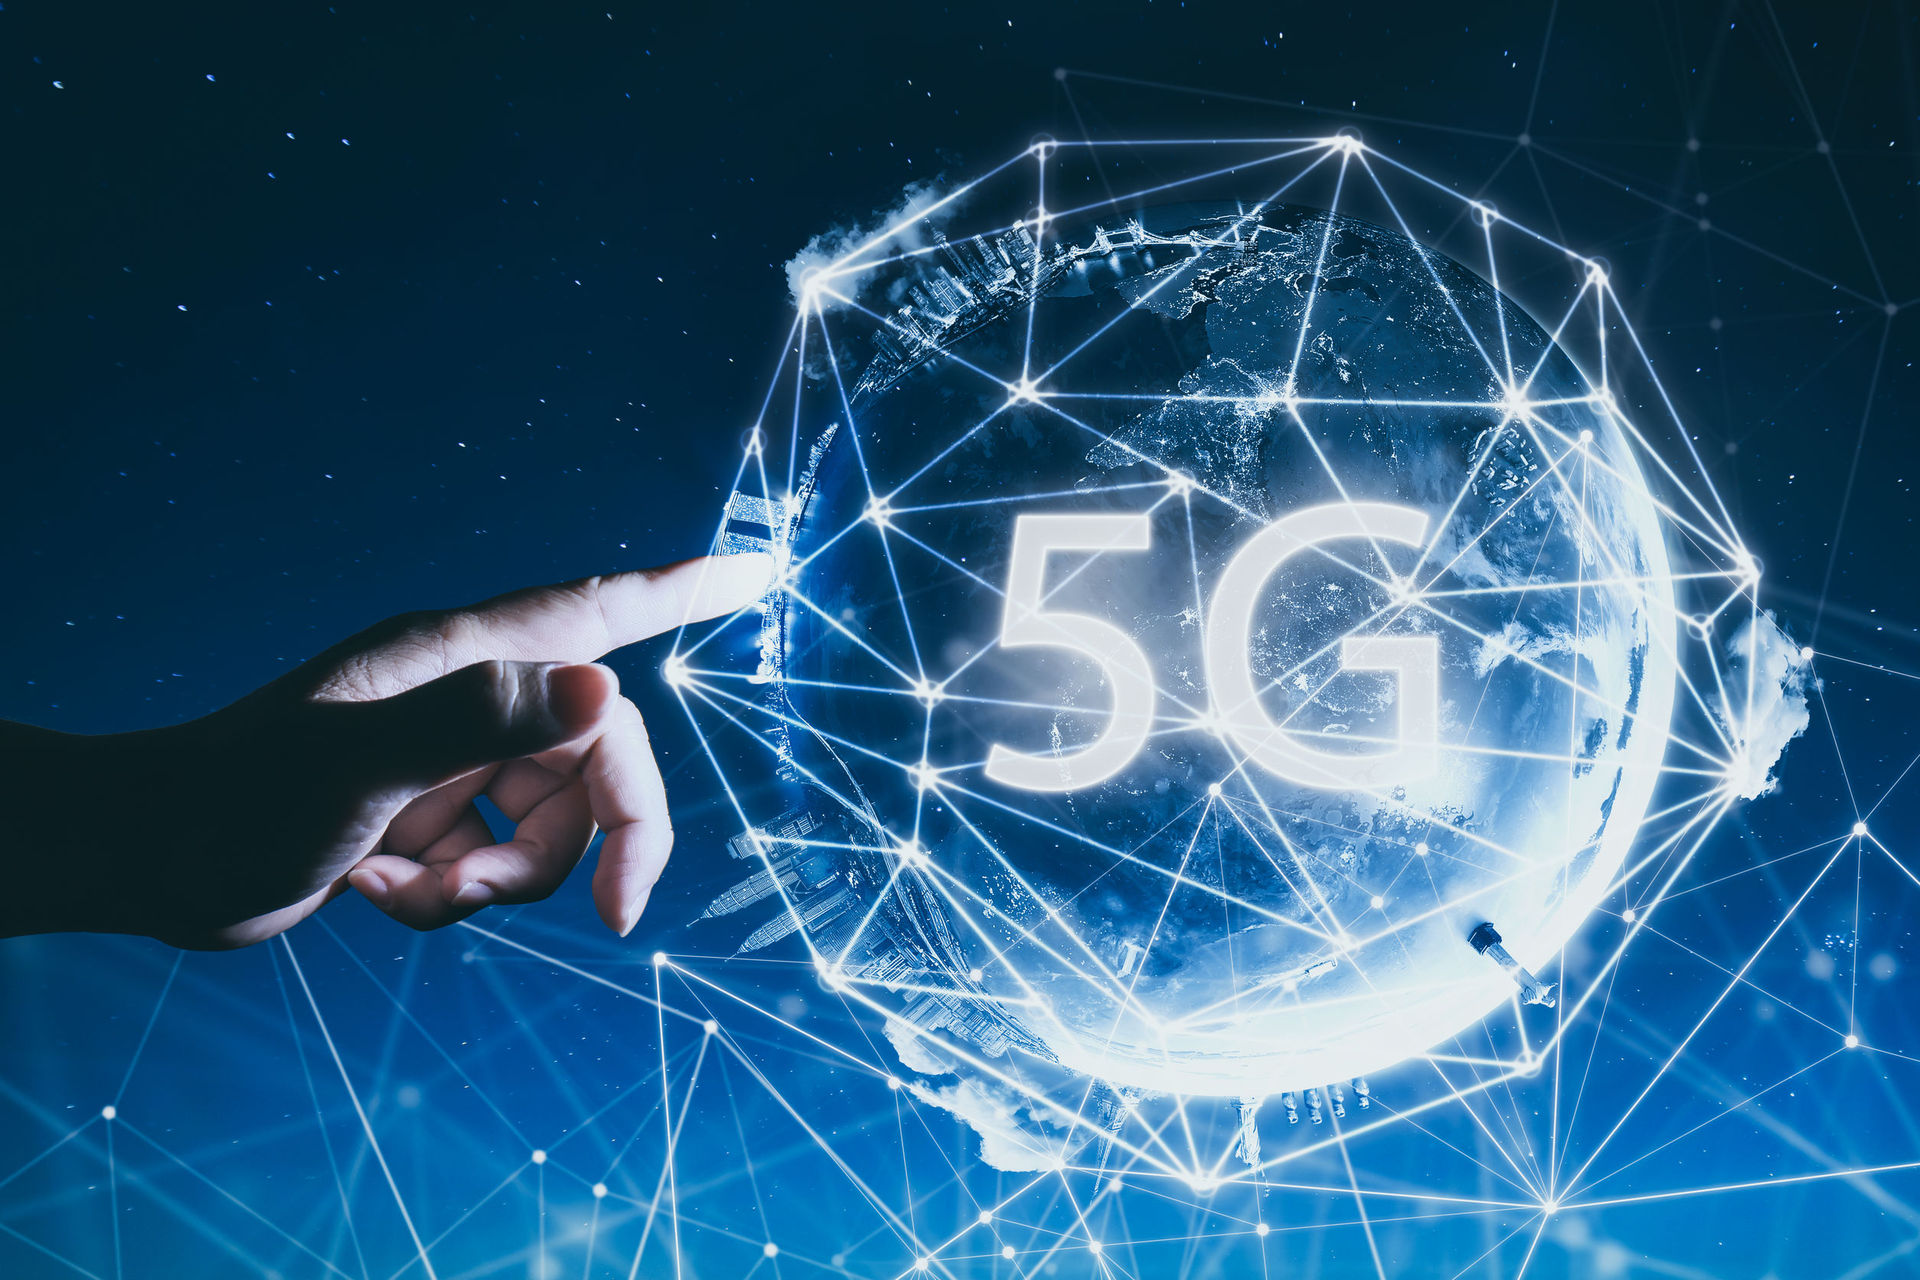 Telcos urge govt to act on 5G scaremongering; ministers ignore visiting 'expert'